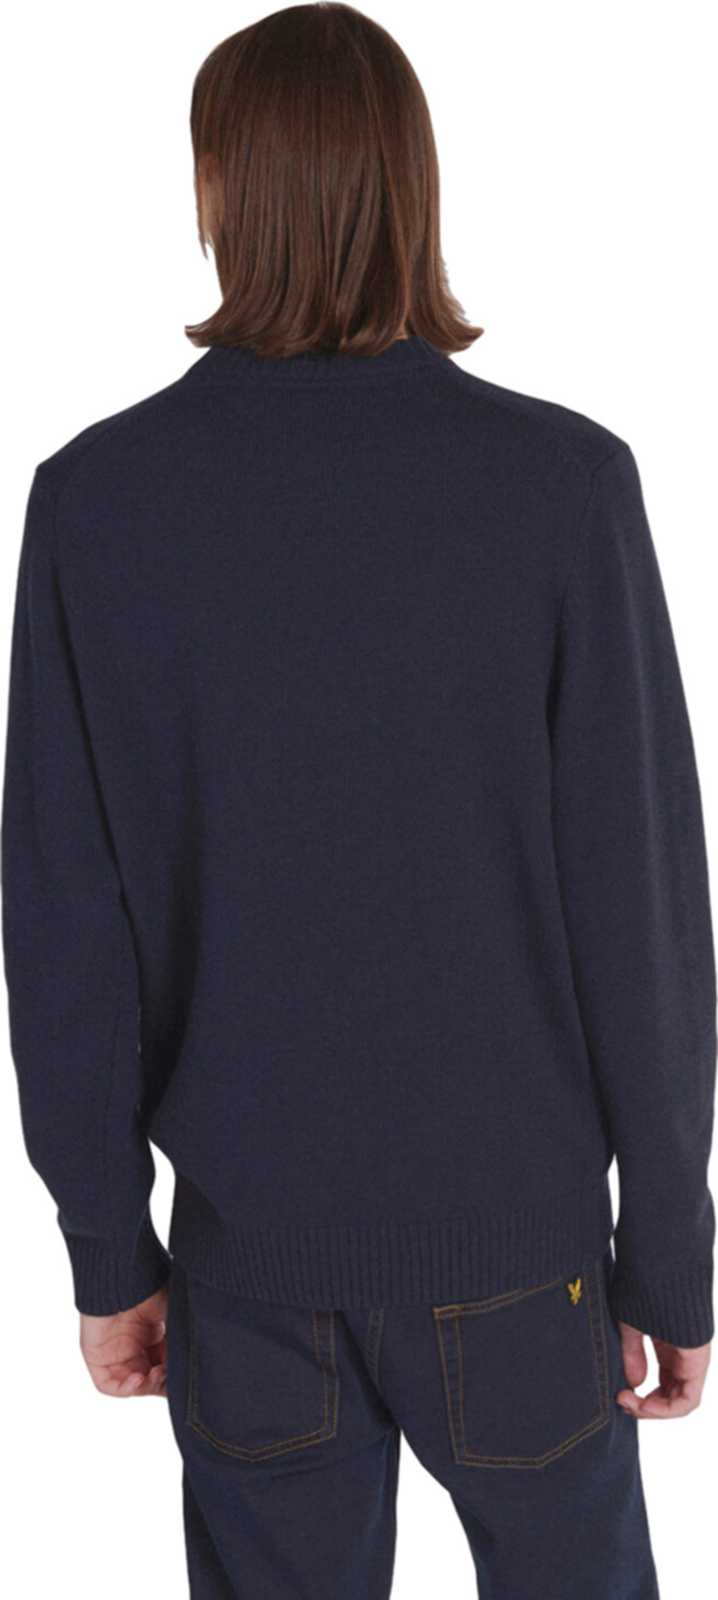 Lyle & Scott Flag Knitted Crew Neck Jumper Navy